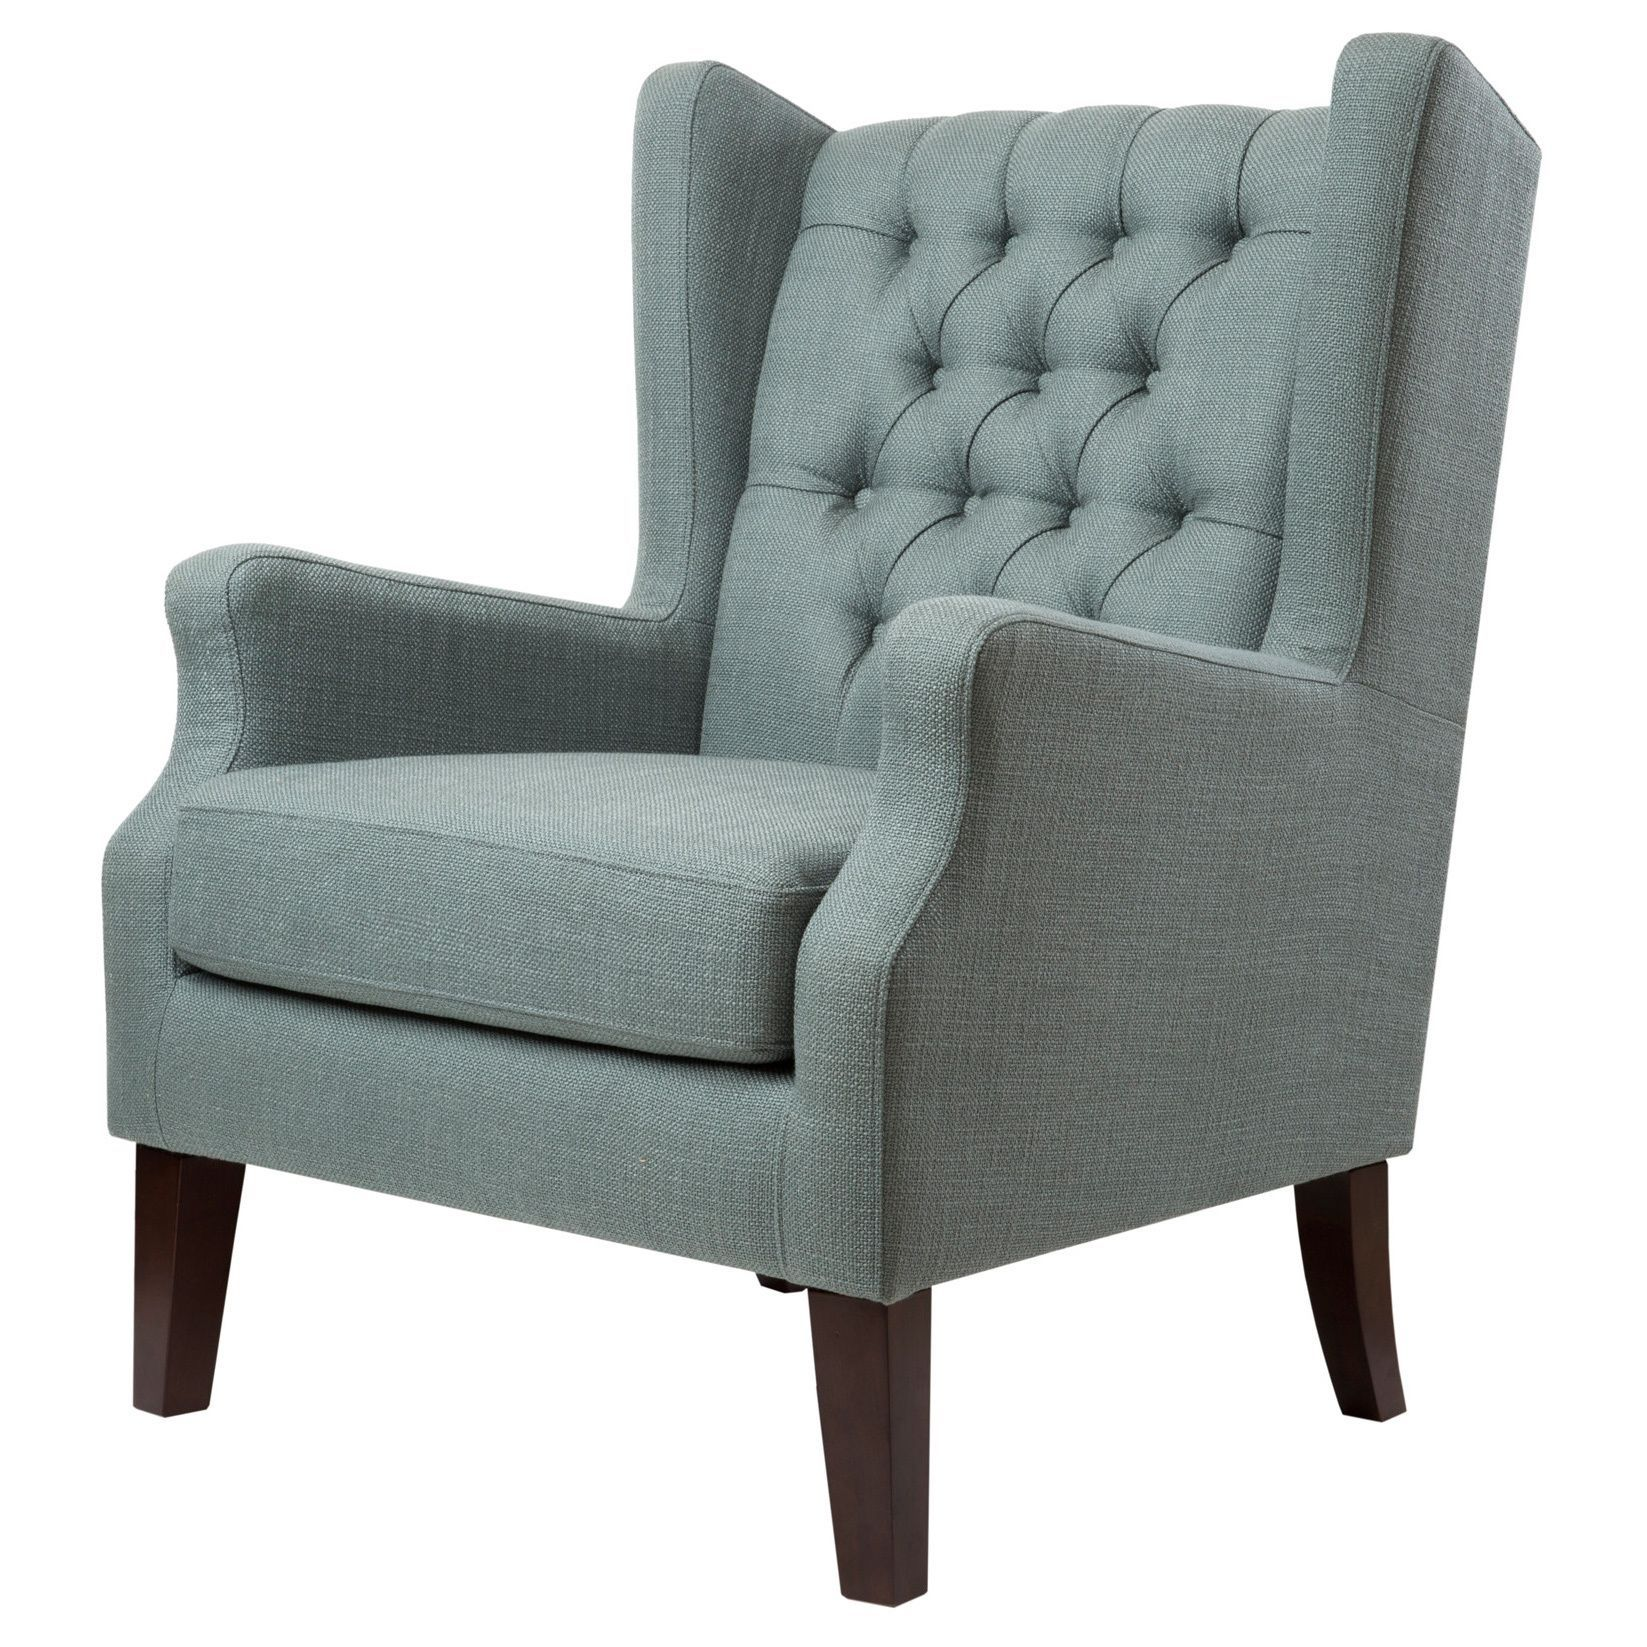 Create A Calm And Serene Environment In Your Room With The Maxwell Best High Back Living Room Chair Review